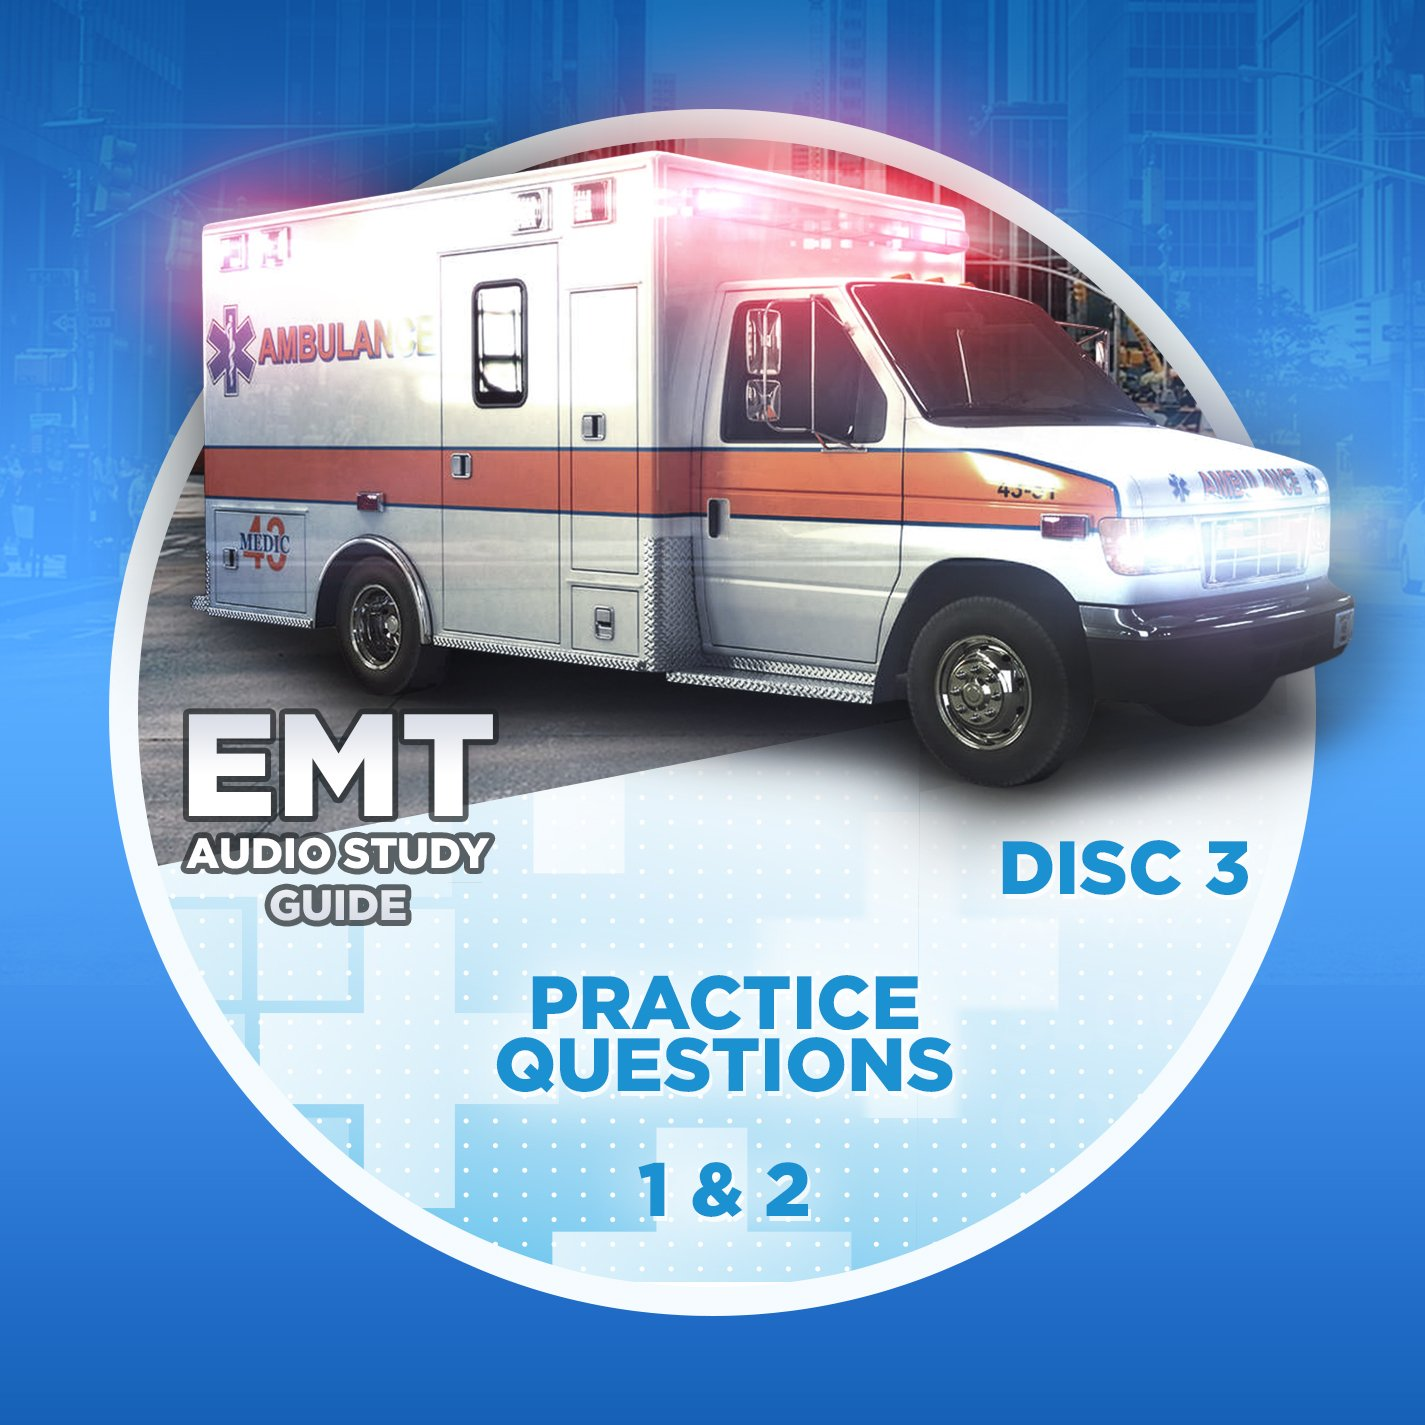 EMT STUDY GUIDE - EMT Basic Audio Study Guide - Perfect for Passing NREMT  Exam! Listen in Car or at Gym! EMT Study for Busy Students. 8 Lessons.